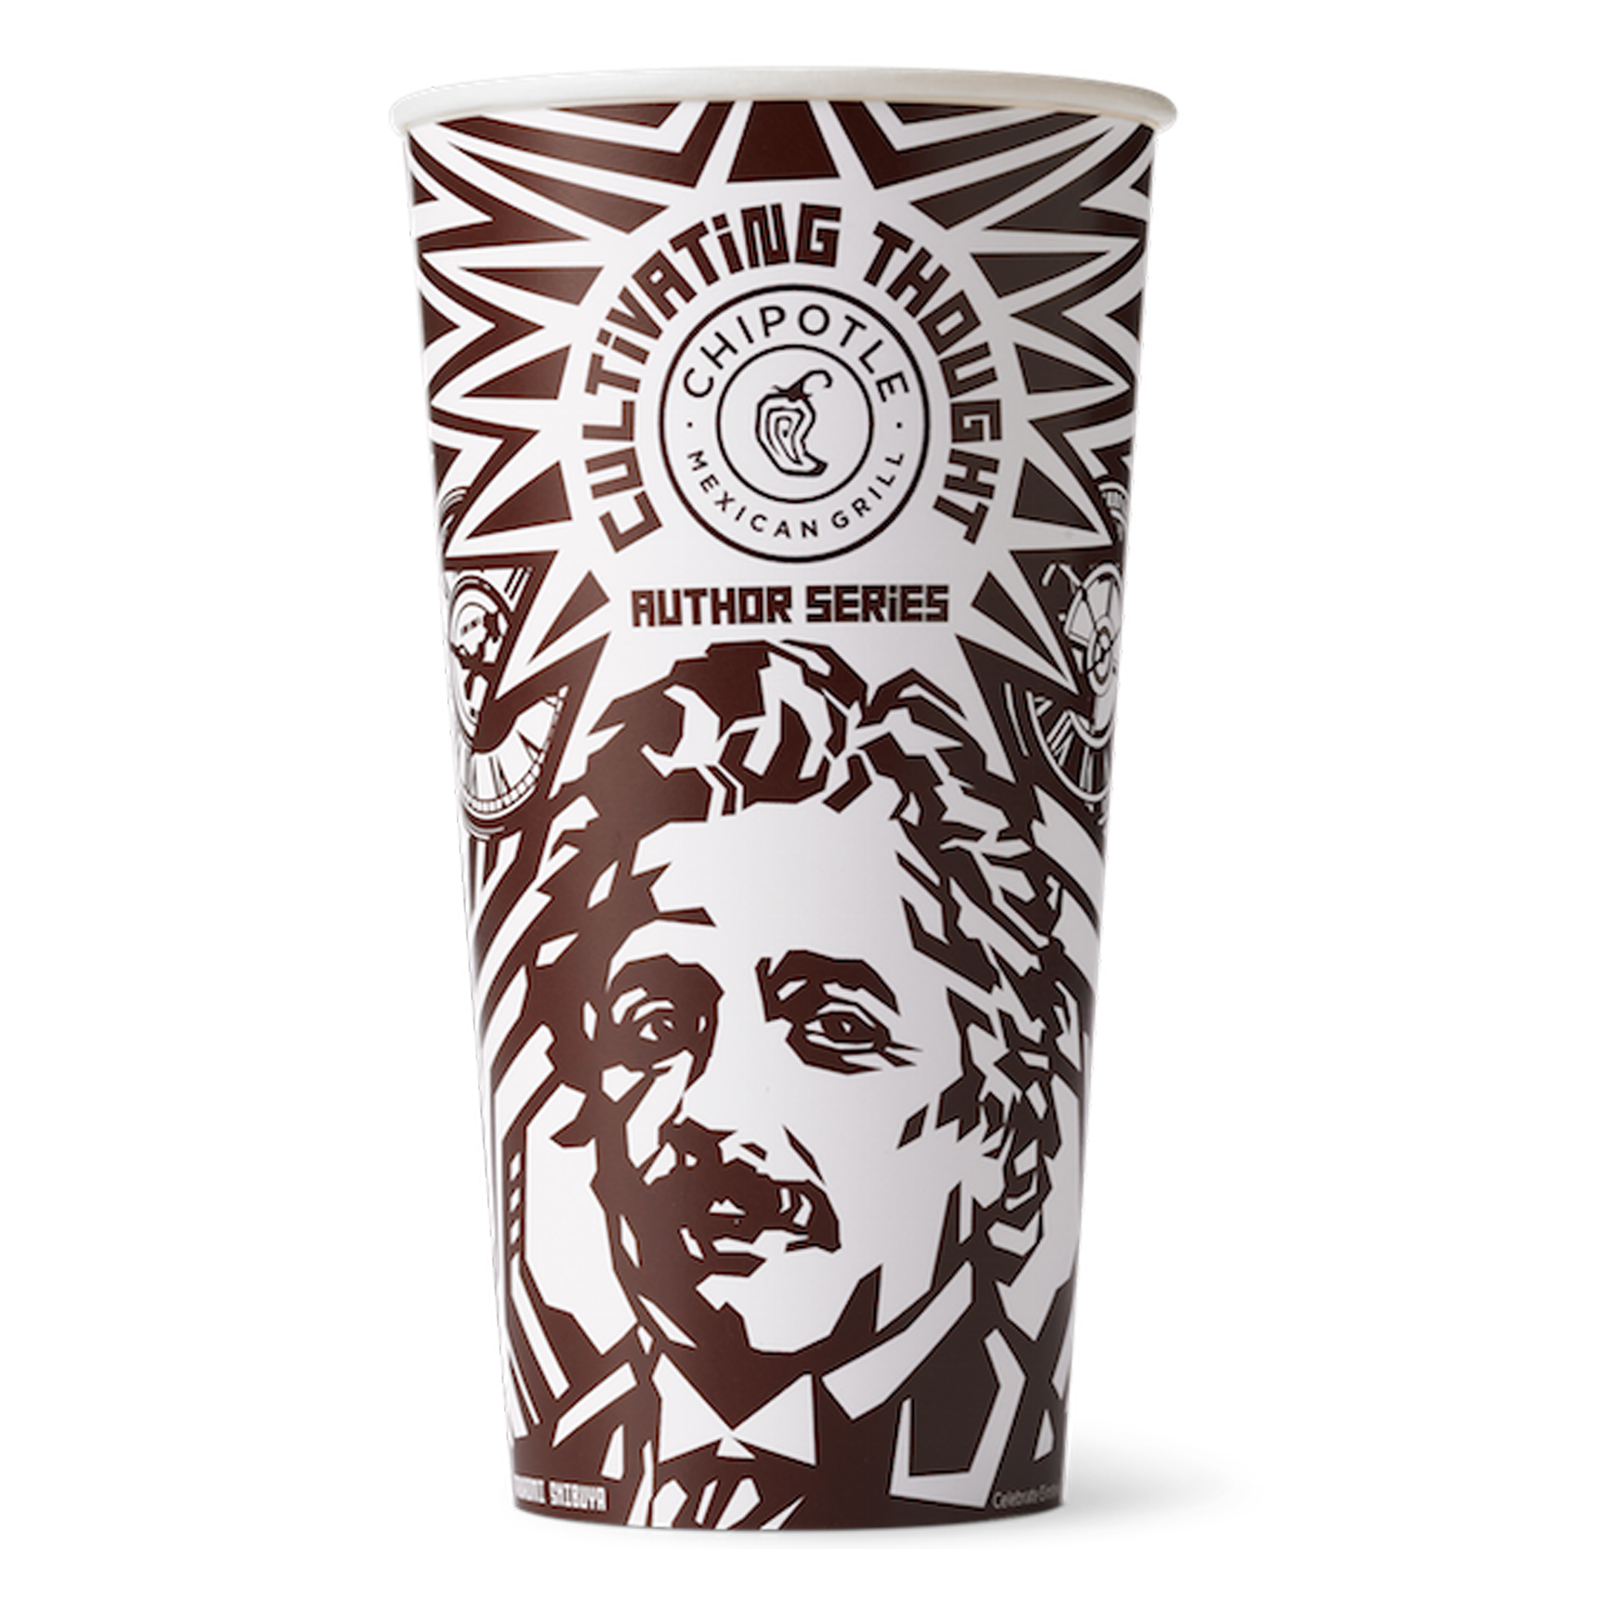 chipotle_cultivatingthought_einstein